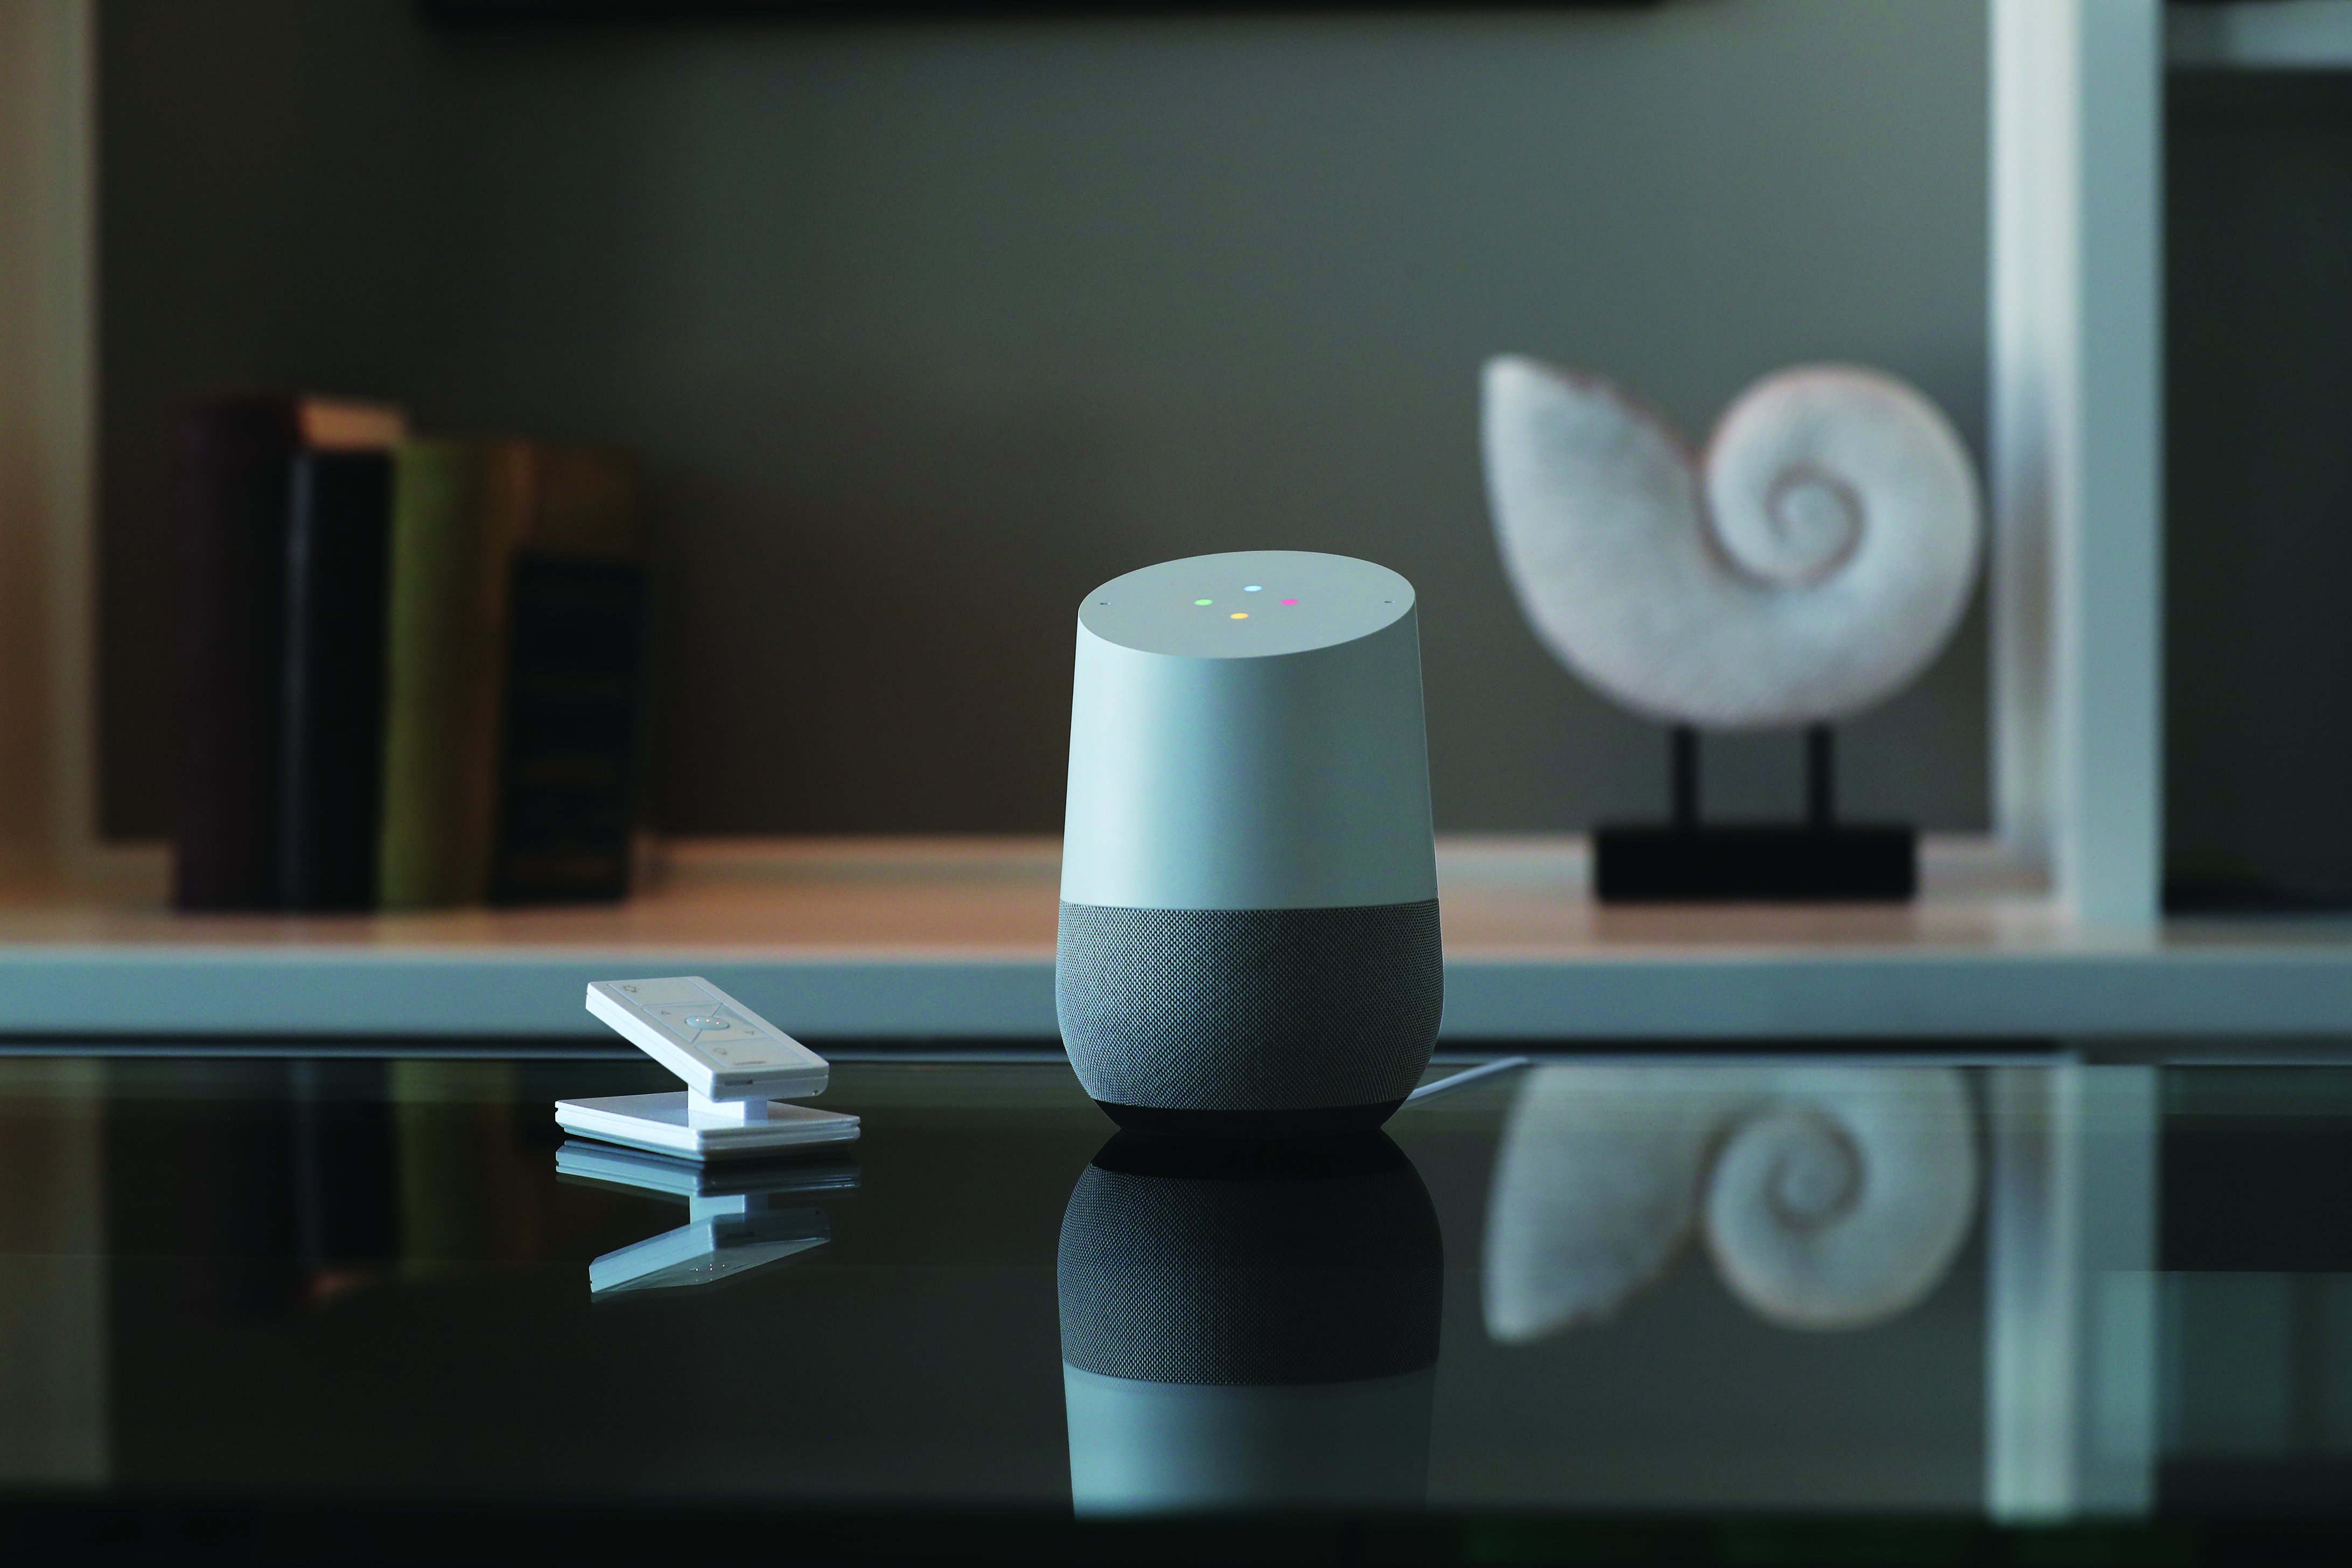 google-home-and-picoon-desk.jpg